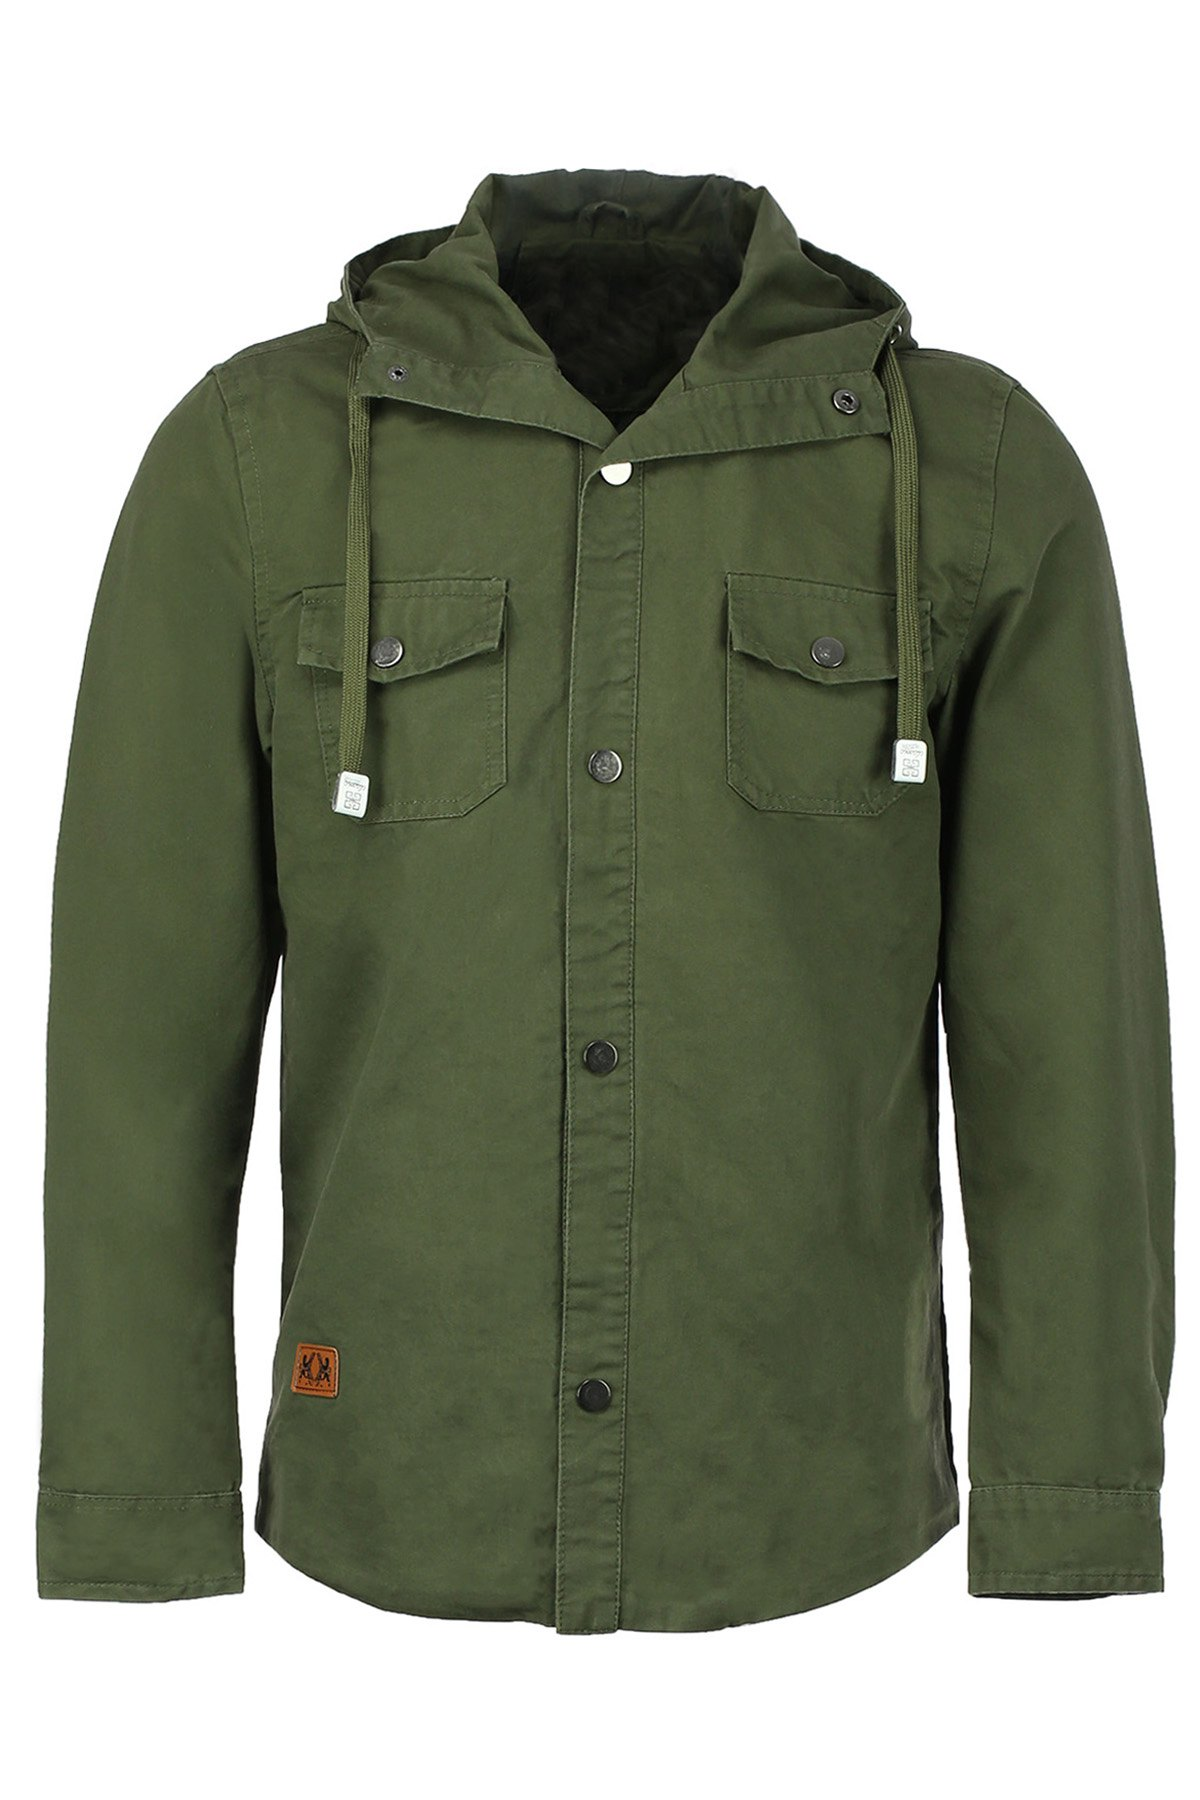 Military Style Hooded Double Pocket Solid Color Long Sleeves Men's Fatigue Jacket - ARMY GREEN XL